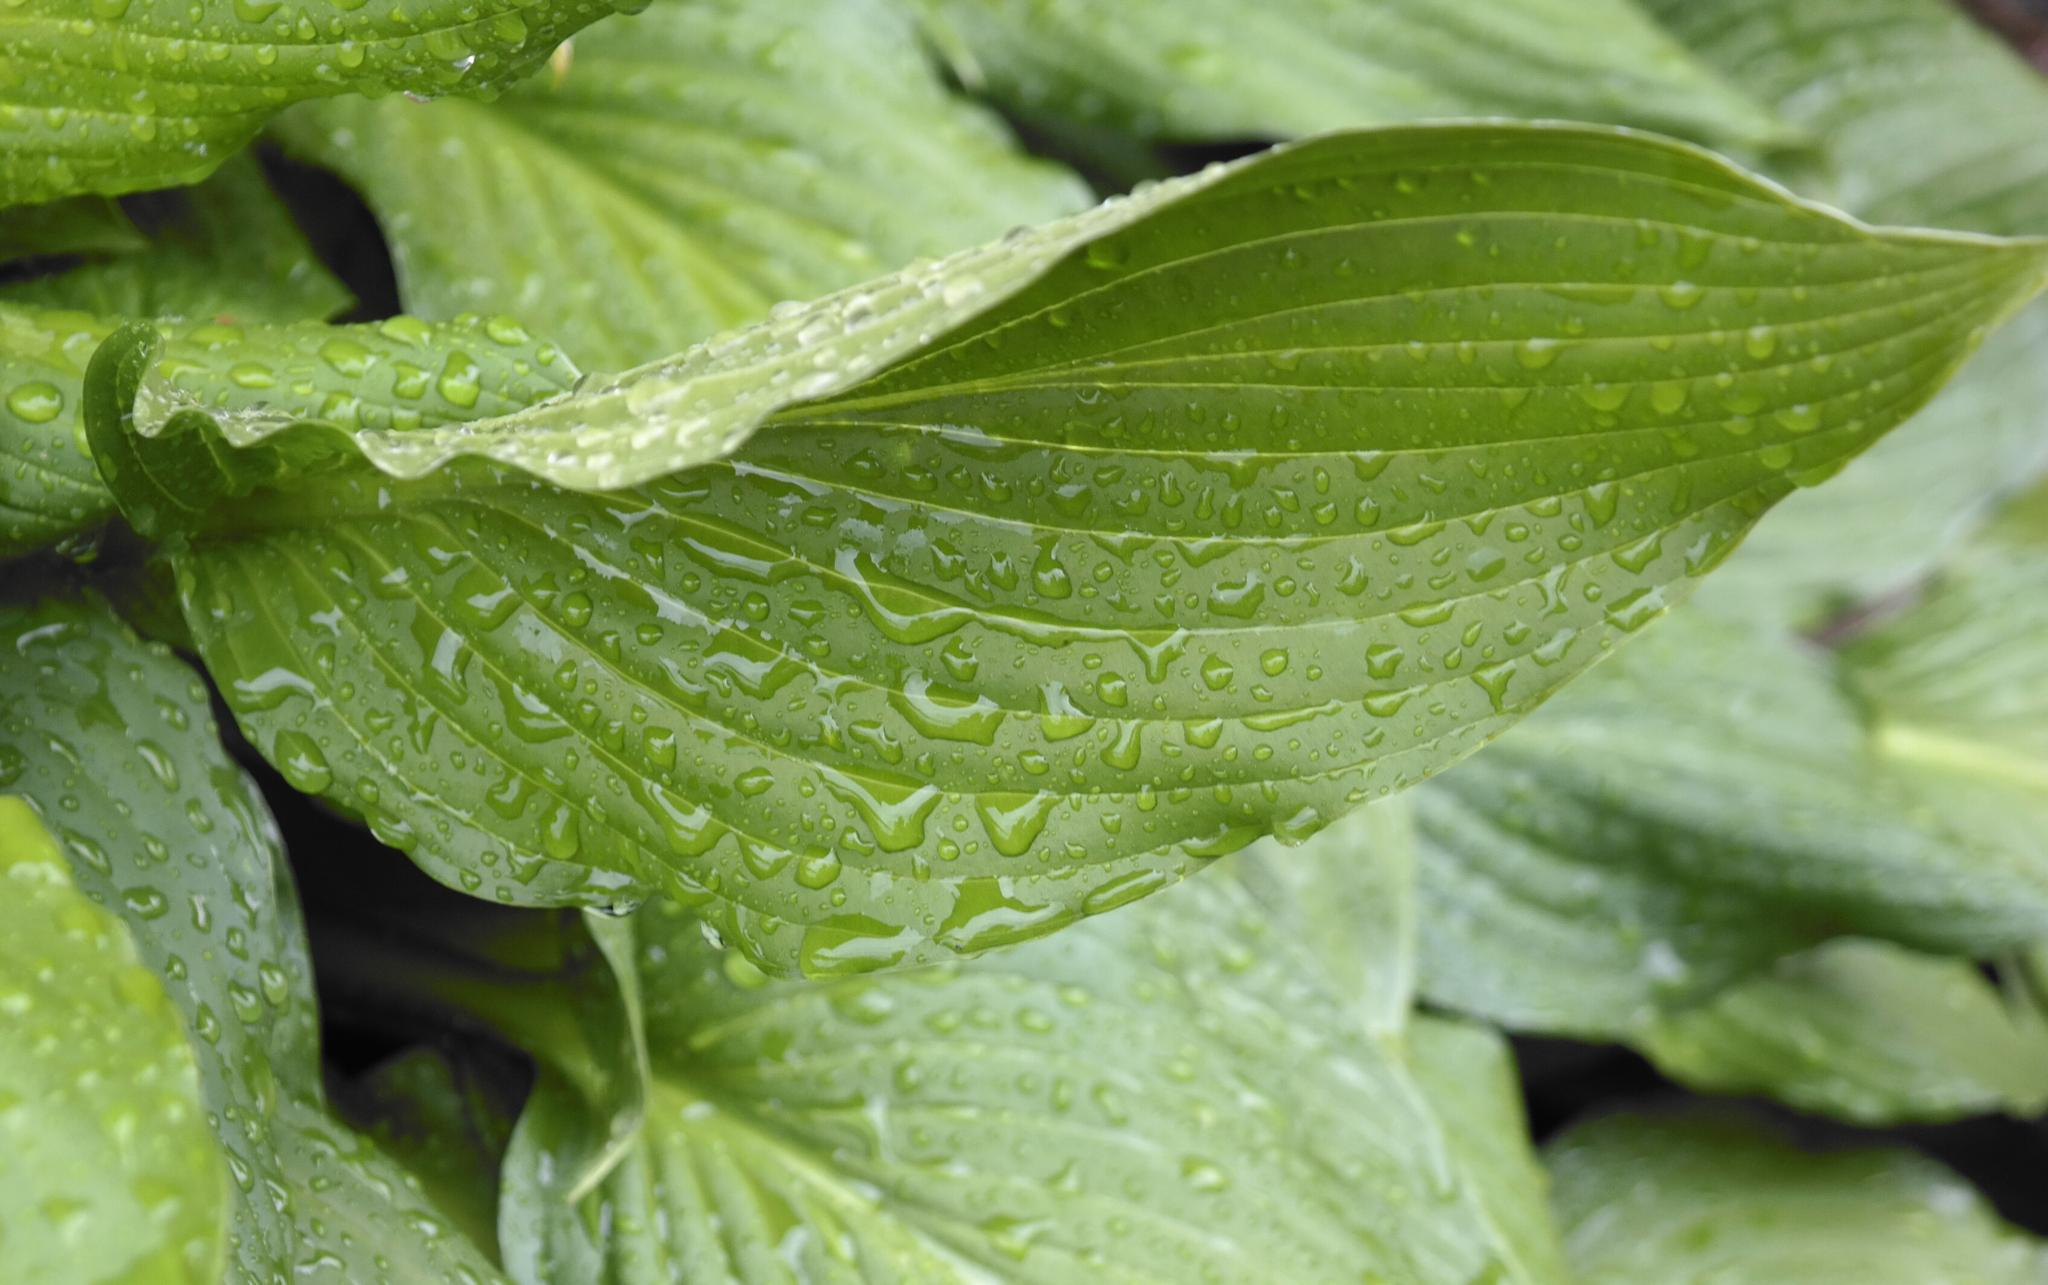 Wet Hosta Leaves by nstephensking